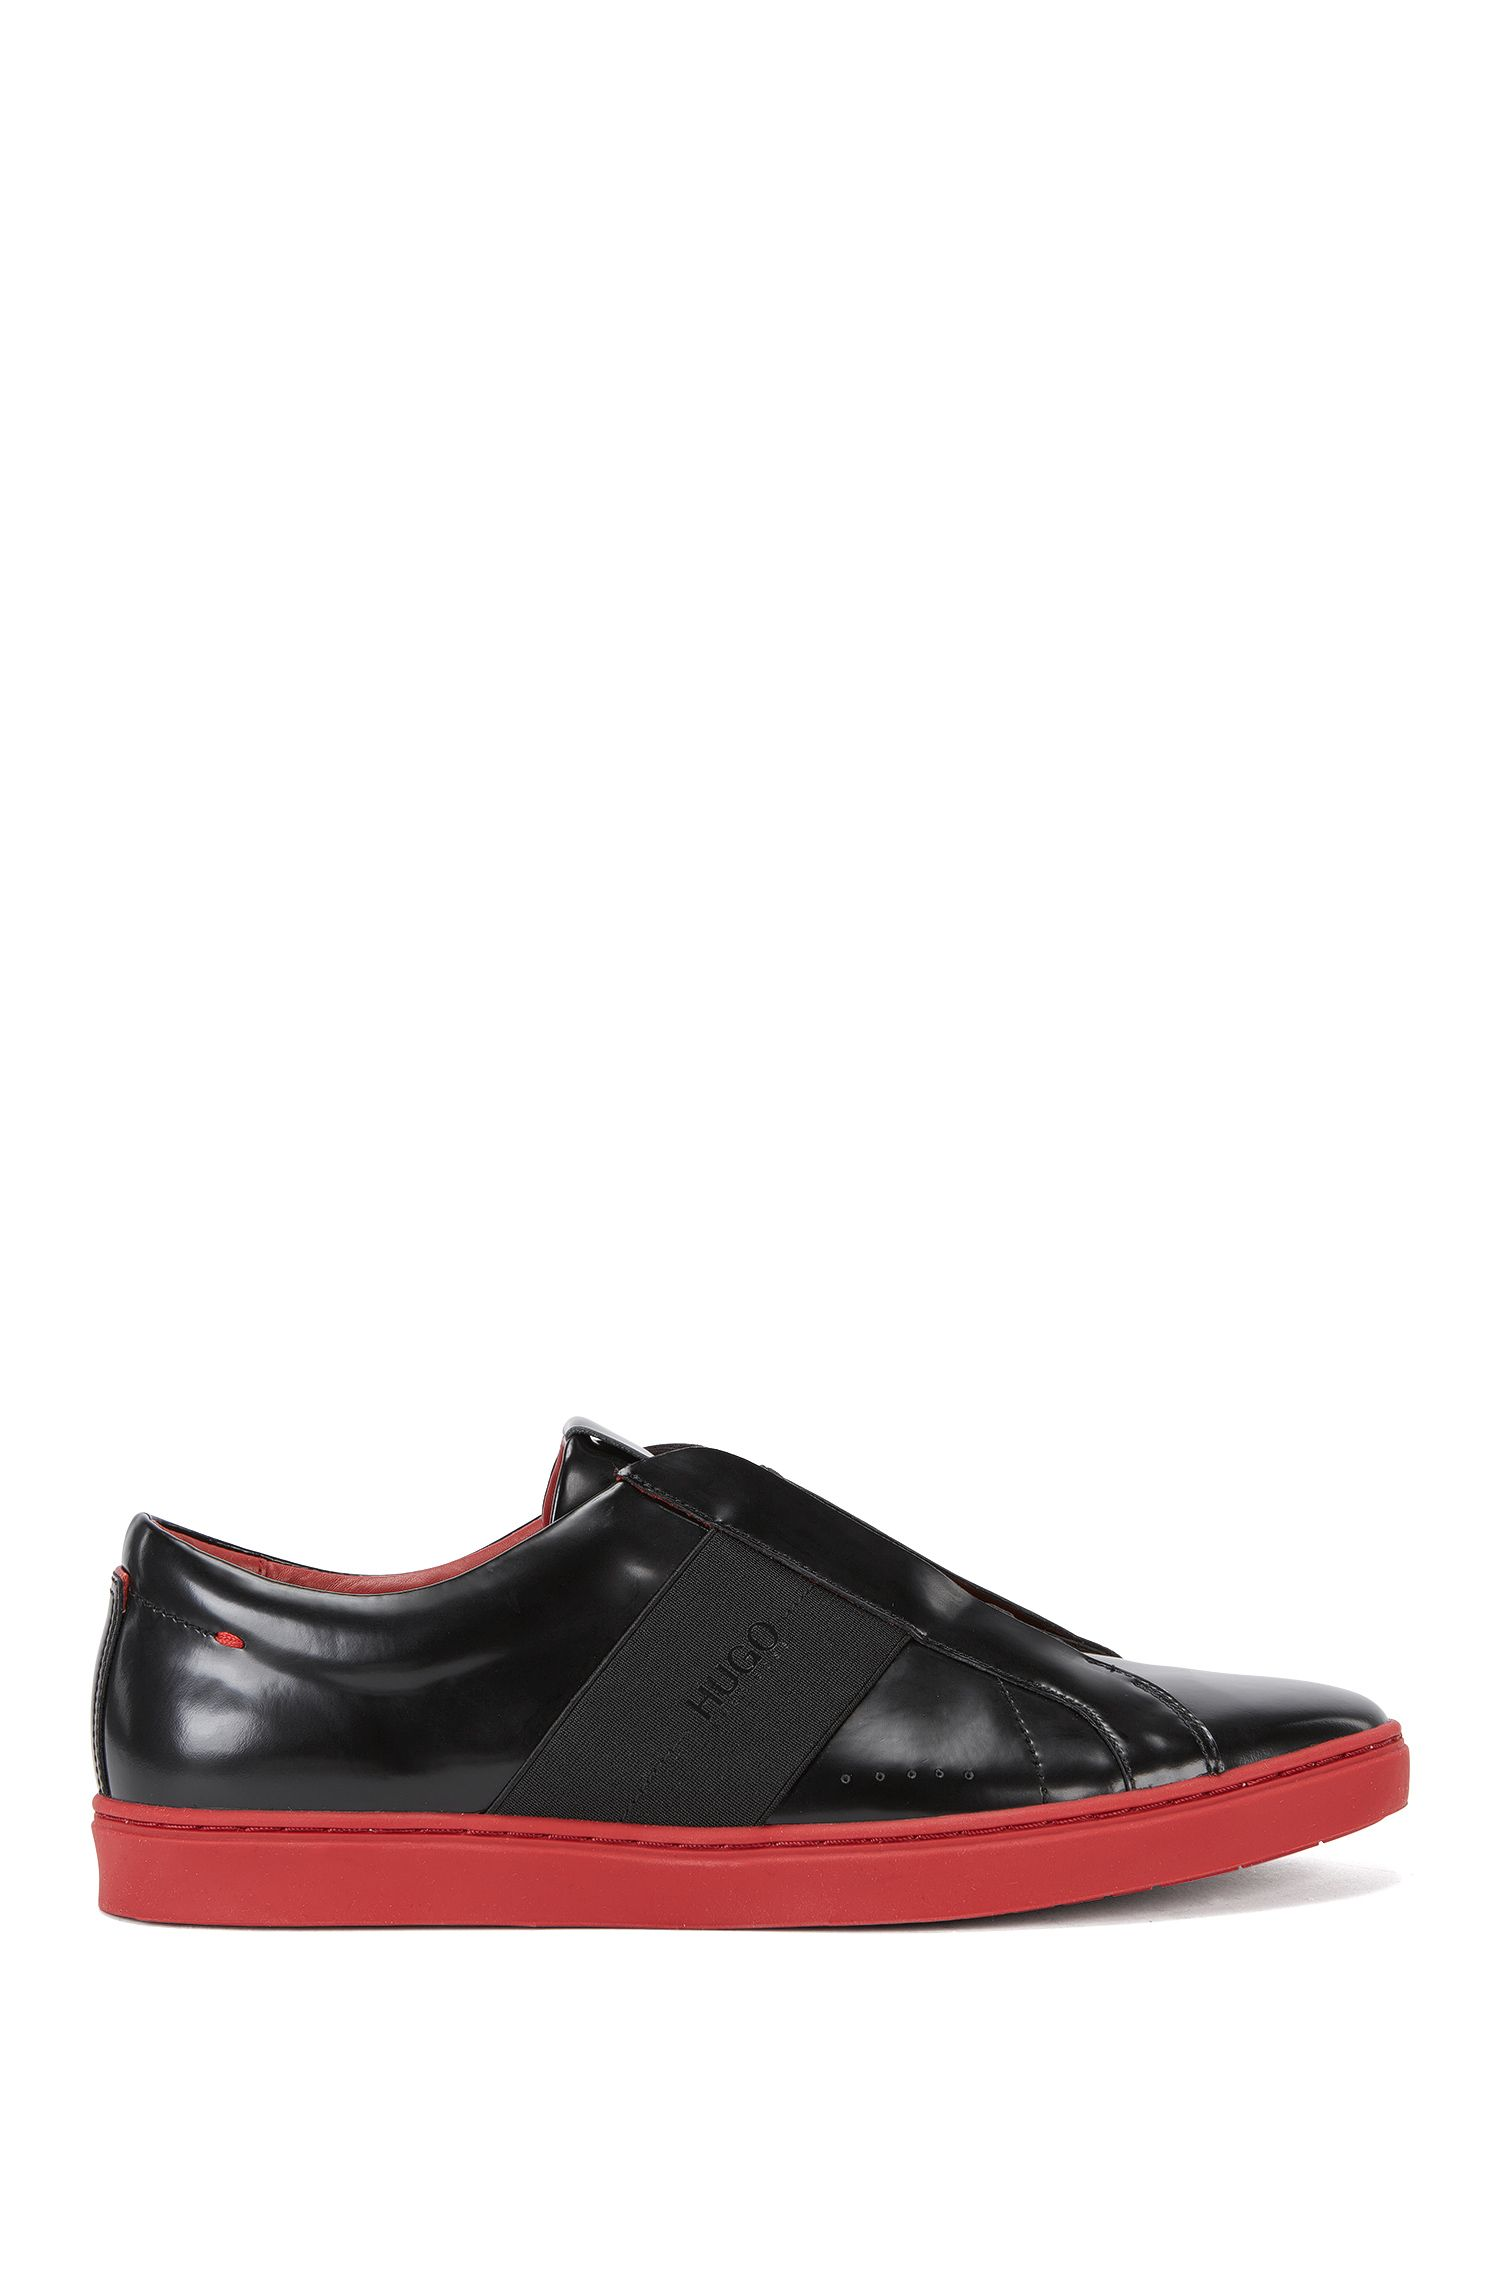 Sneakers in pelle slip-on con dettagli elastici